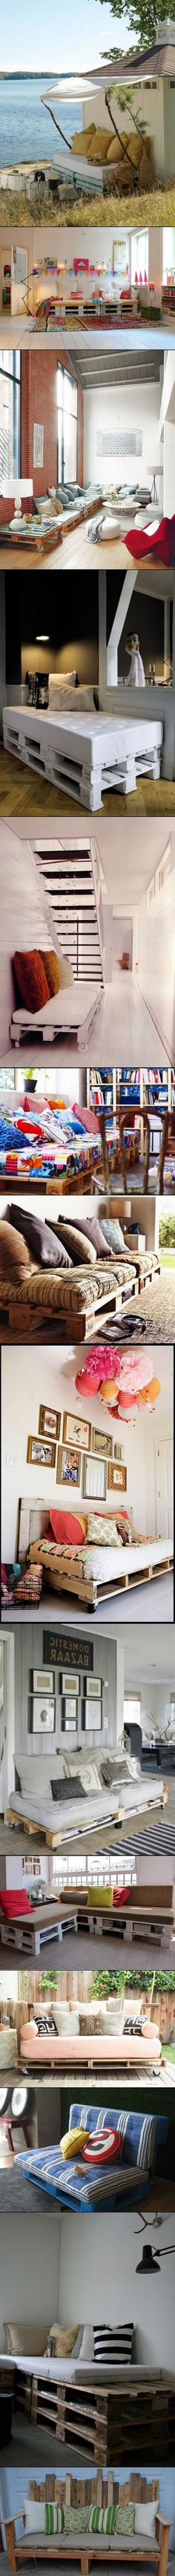 DIY Palette Home Decor